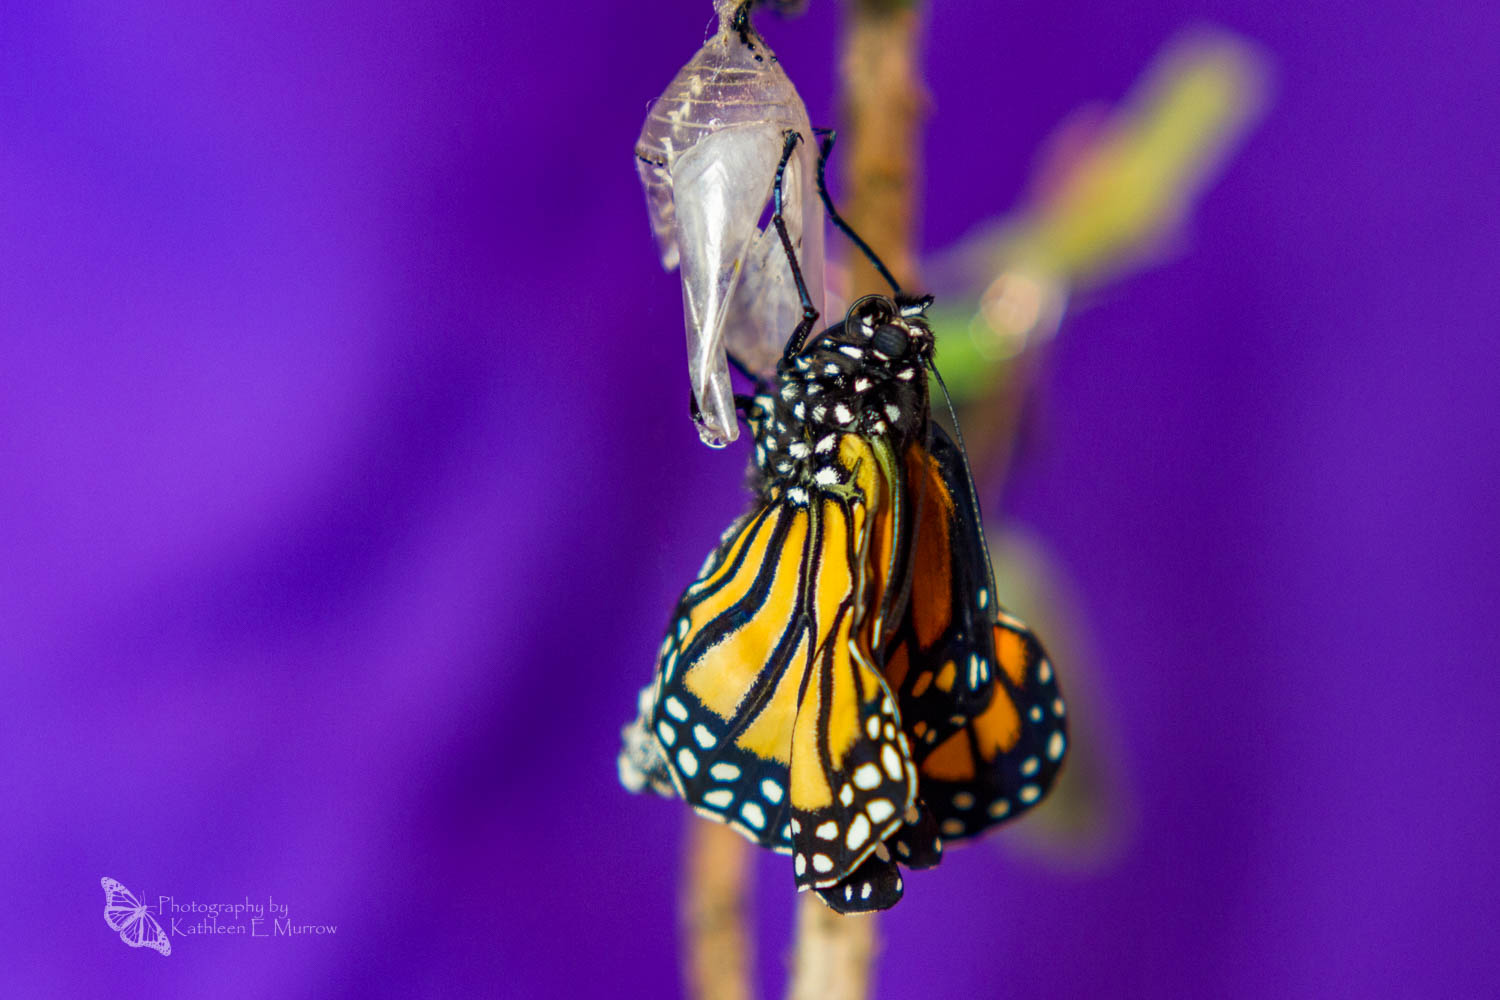 A monarch butterfly, freshly eclosed (emerged from its chrysalis), hangs from its empty chrysalis, its wings still crumpled